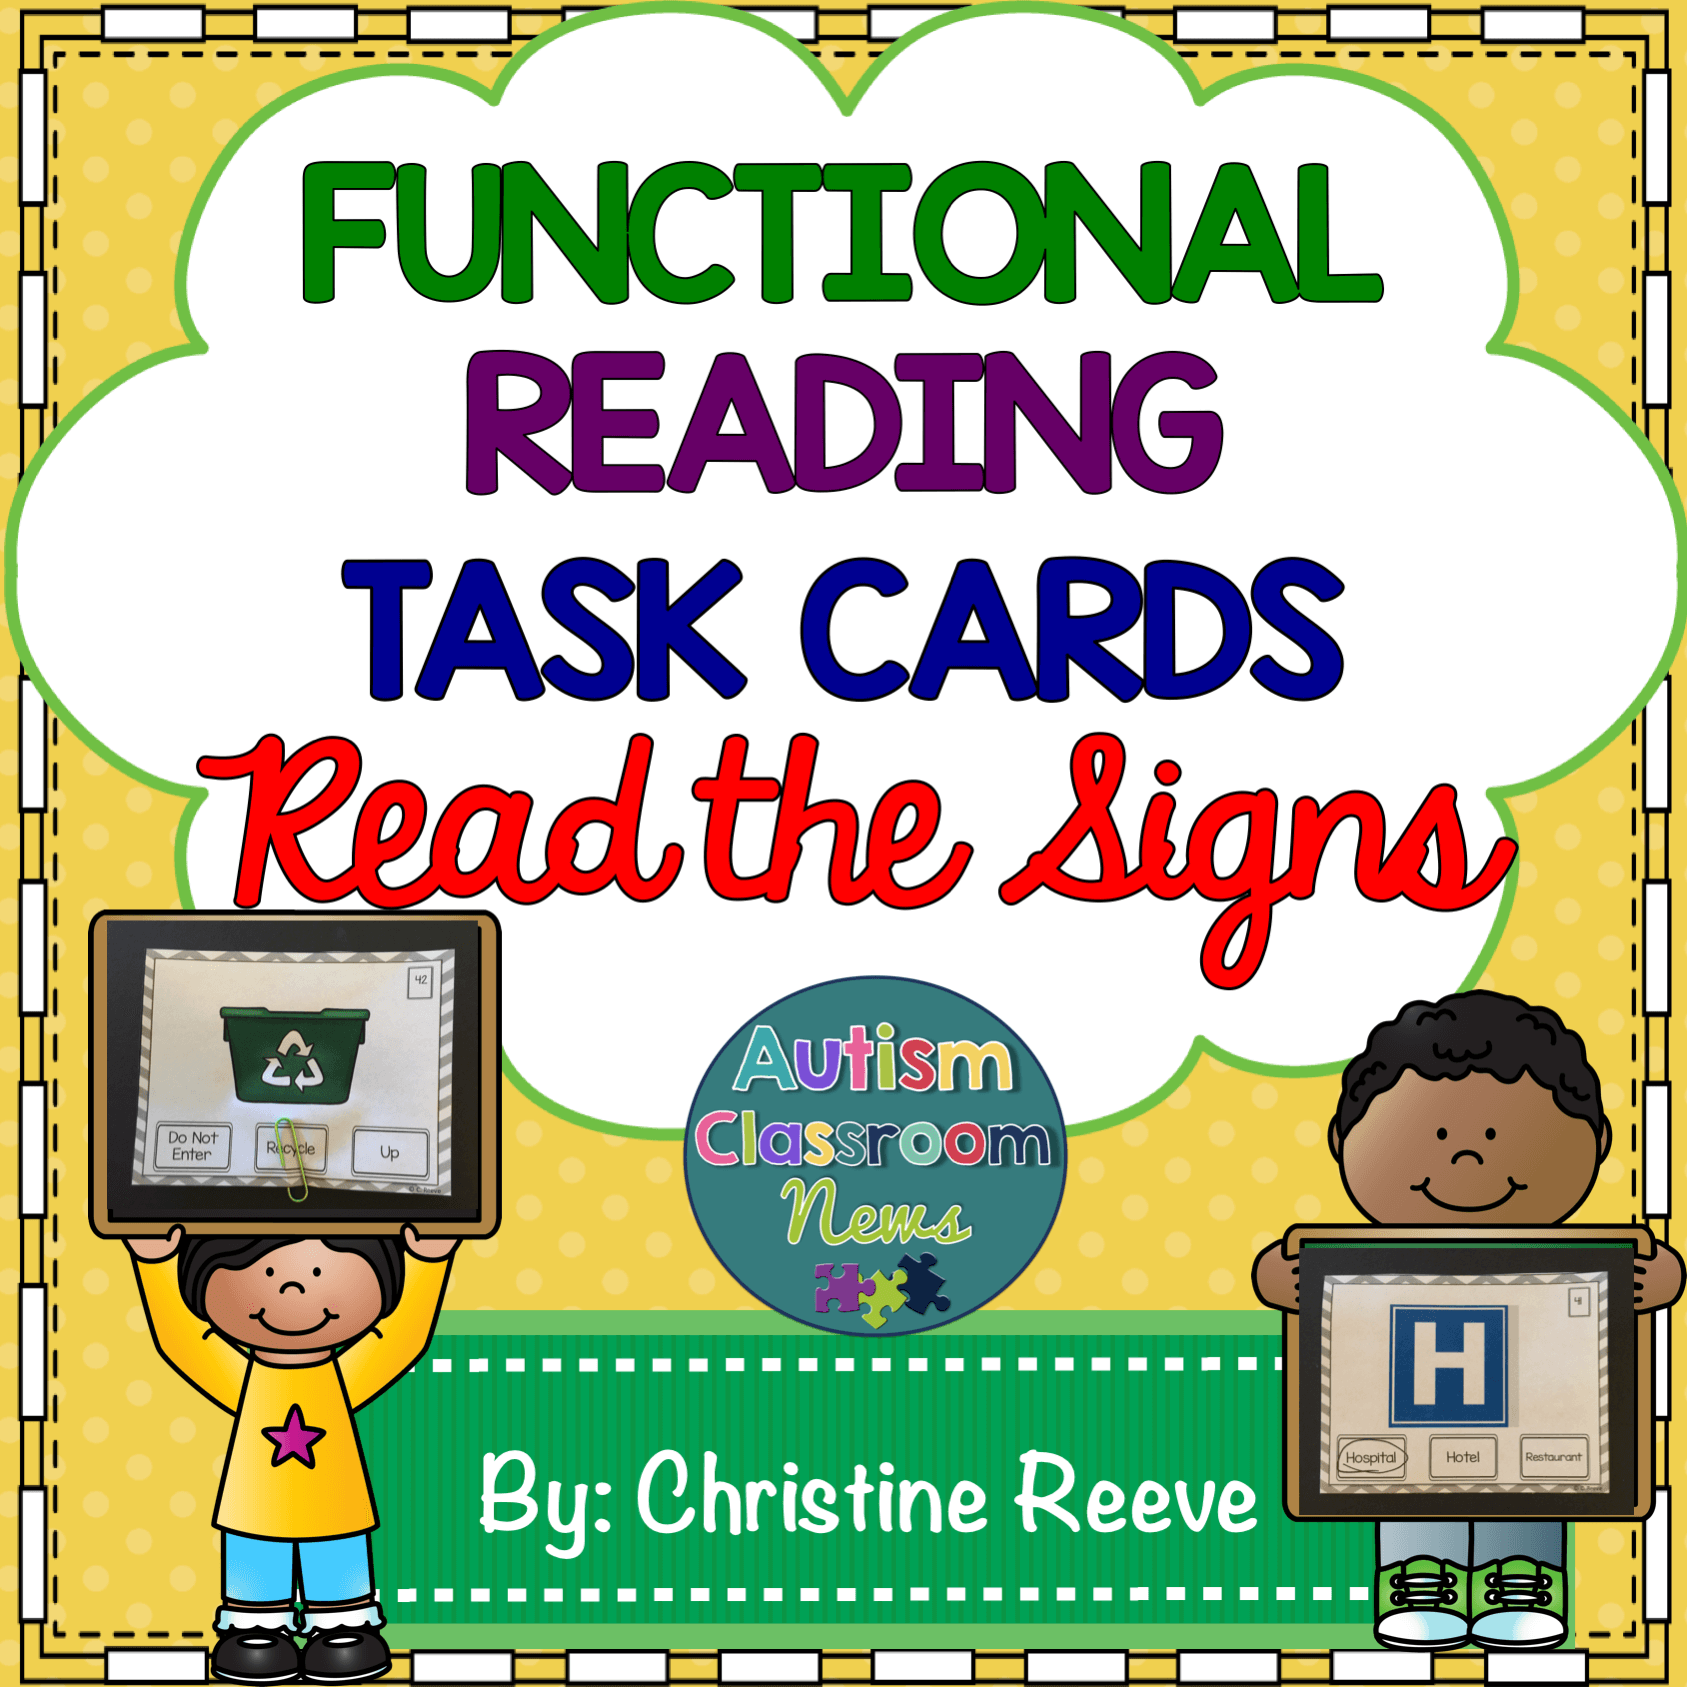 Functional Reading Task Cards Community Signs from Autism Classroom News